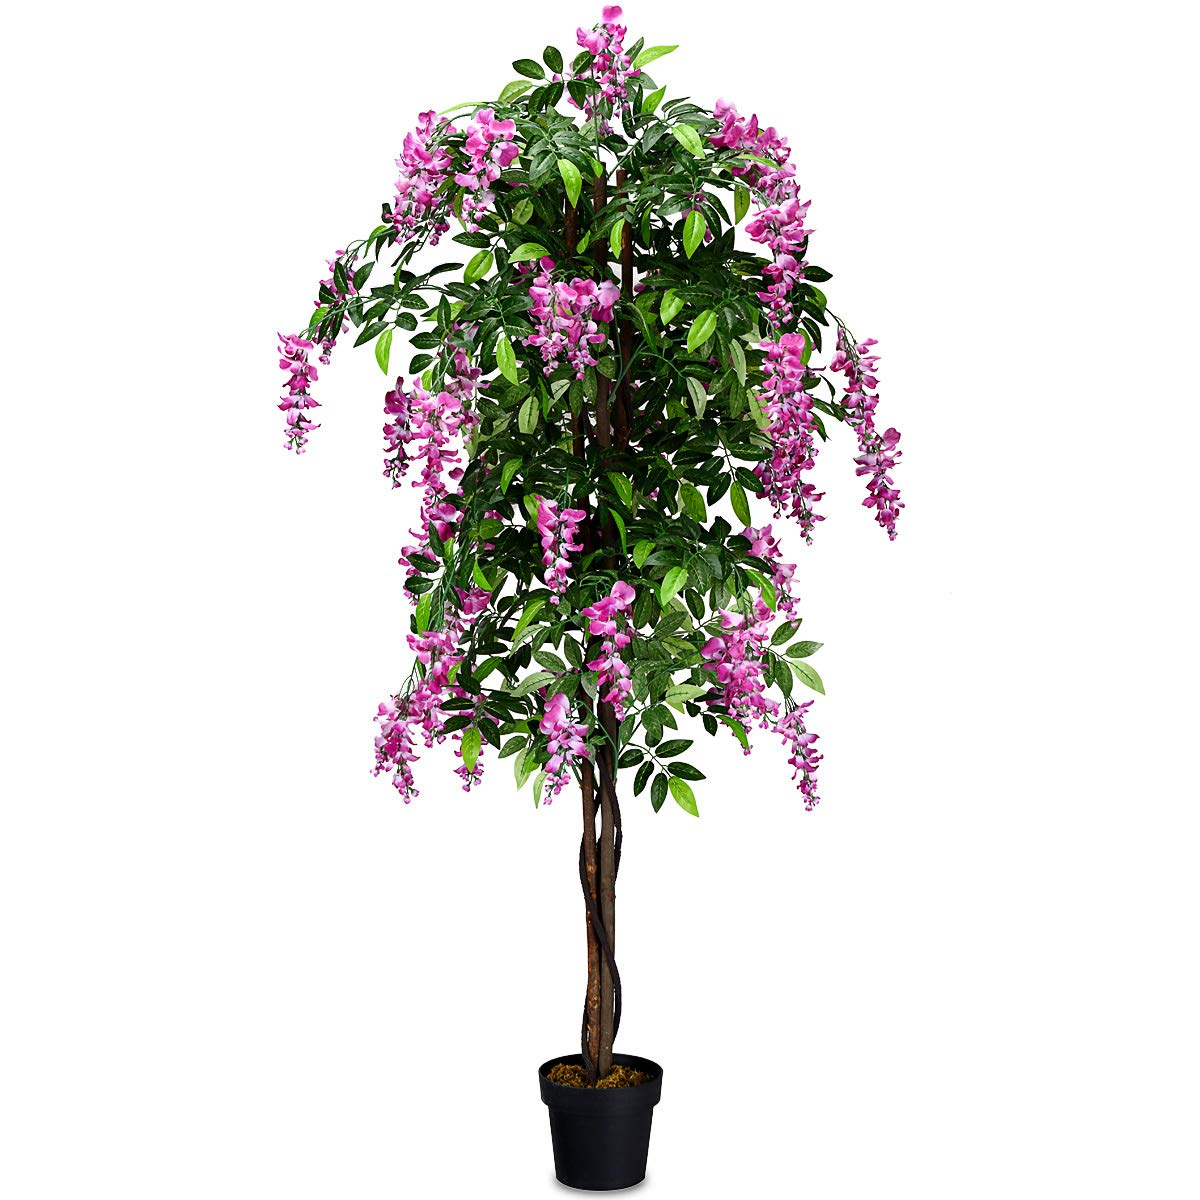 6ft Ficus Artificial Trees for Indoor or Outdoor